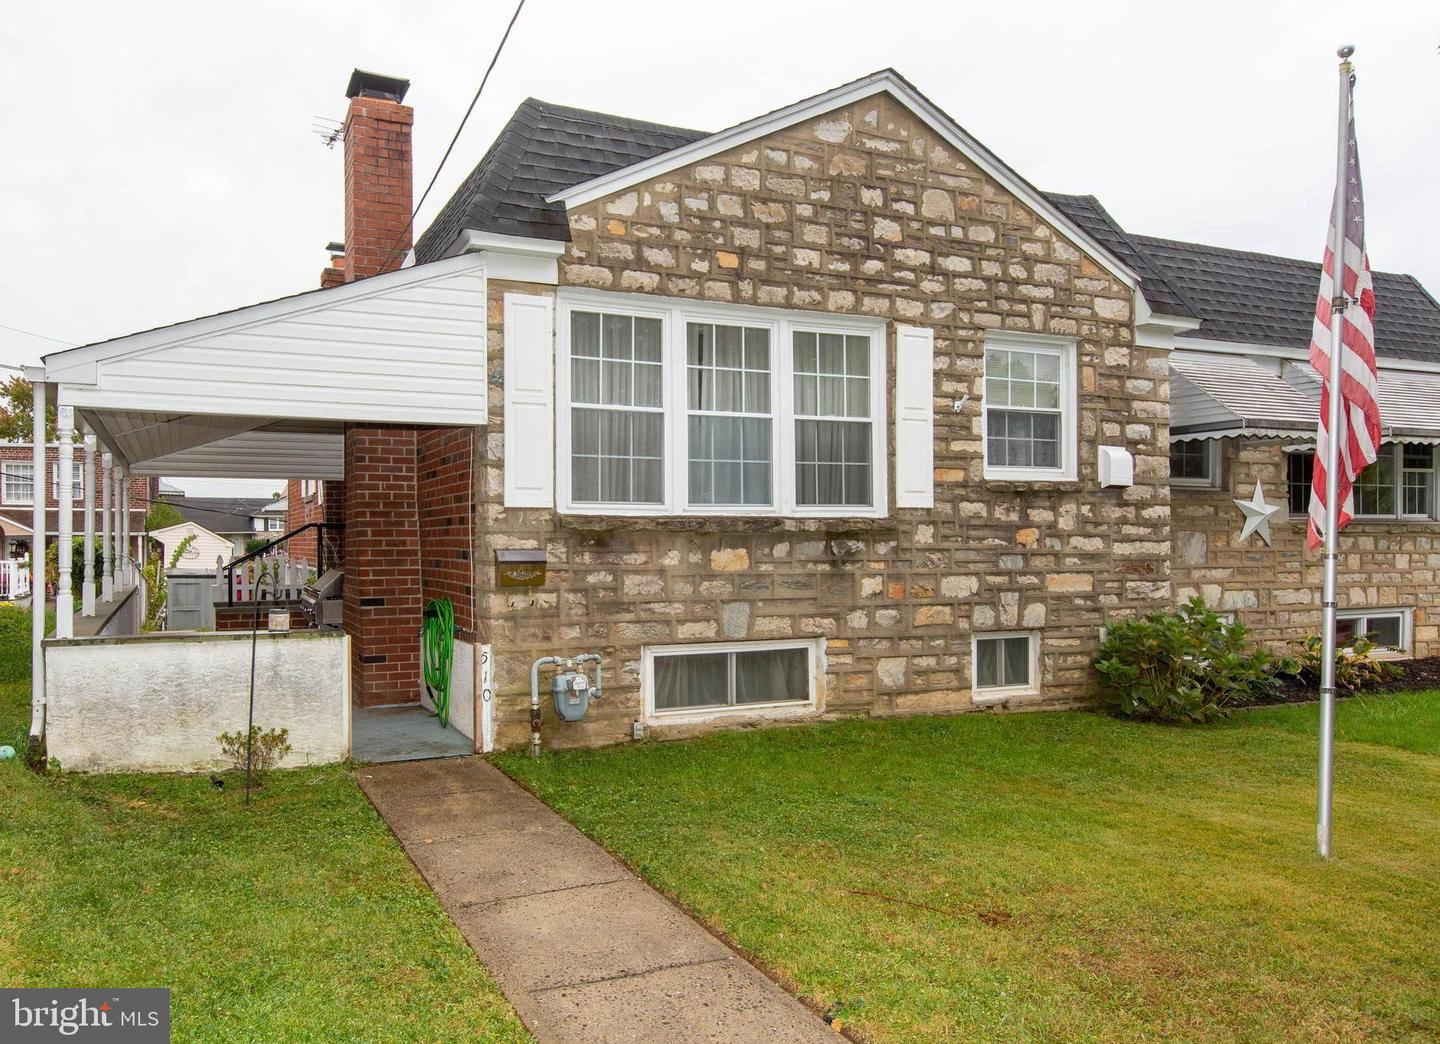 510 Glen Valley Drive Norristown, PA 19401